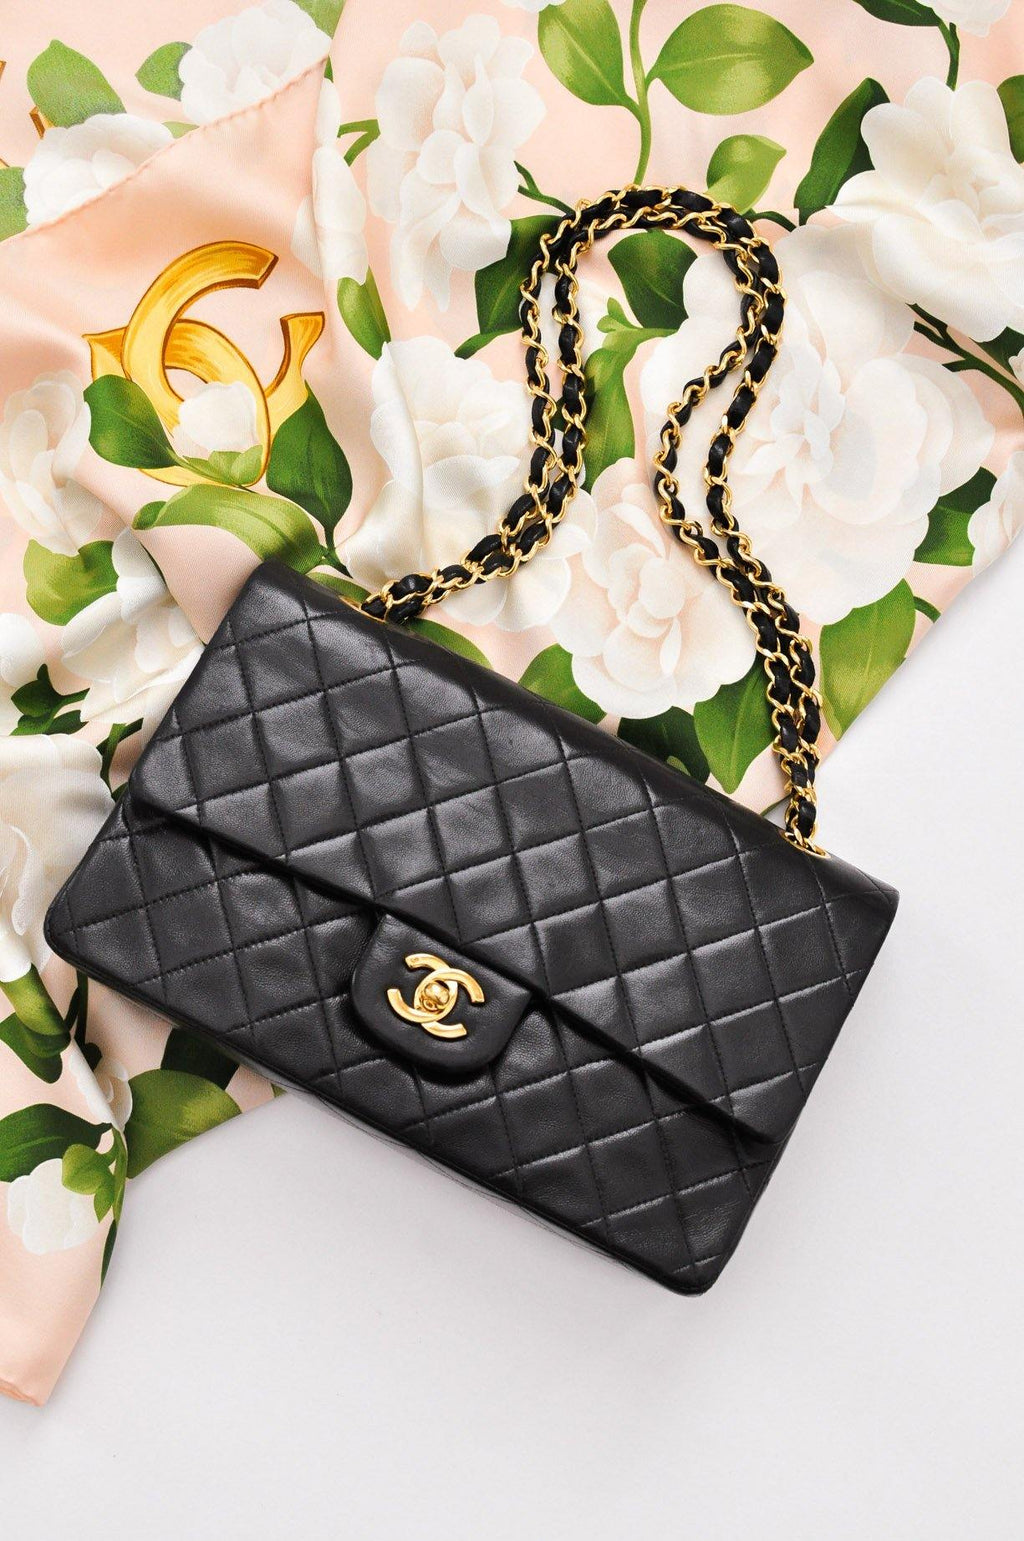 Chanel 2.55 Classic Black Flap Bag